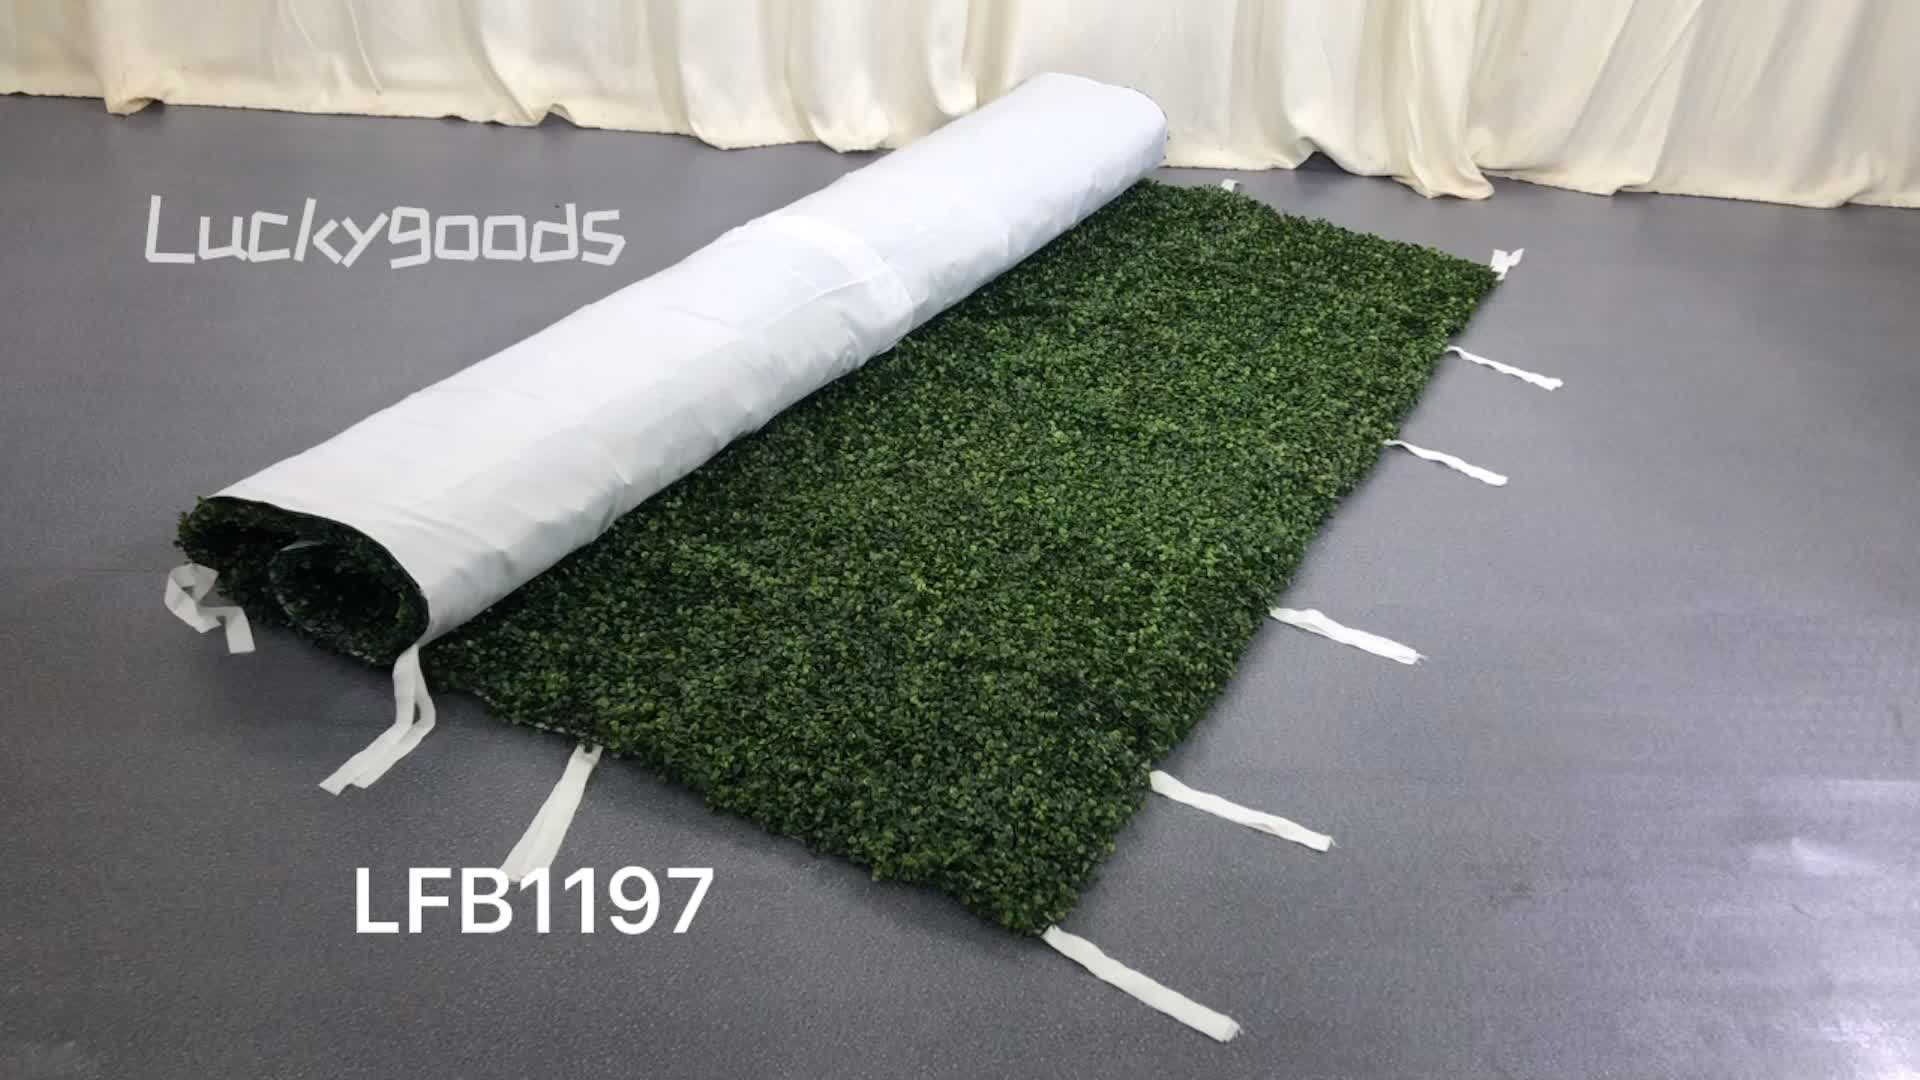 LFB1273 Handmade Christmas decoration roll up green wall  grass backdrops for sale